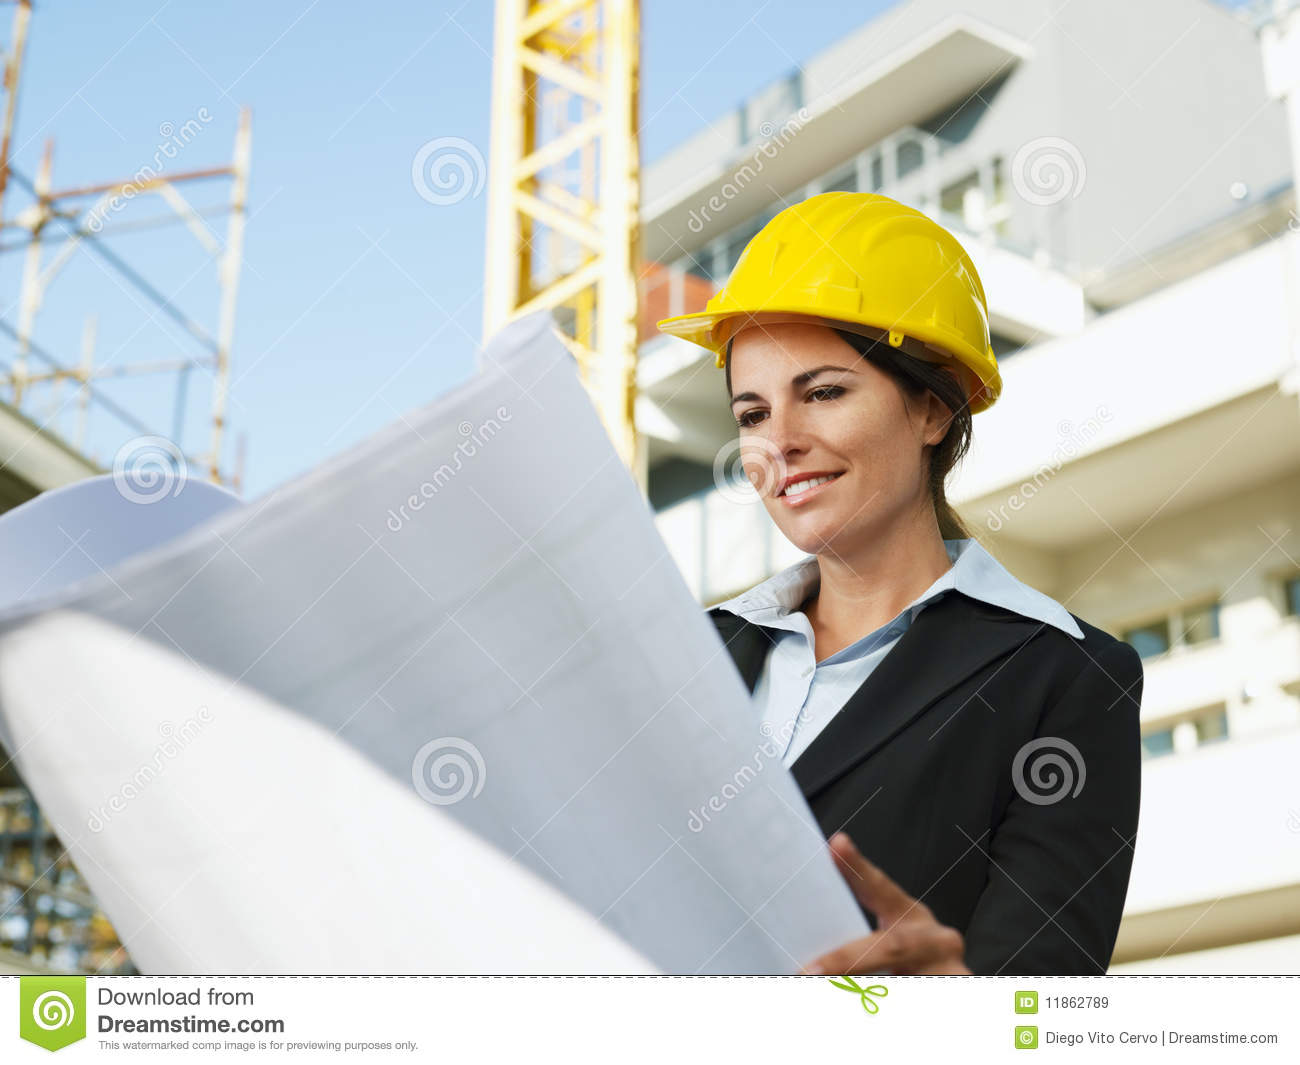 how to become a construction engineer